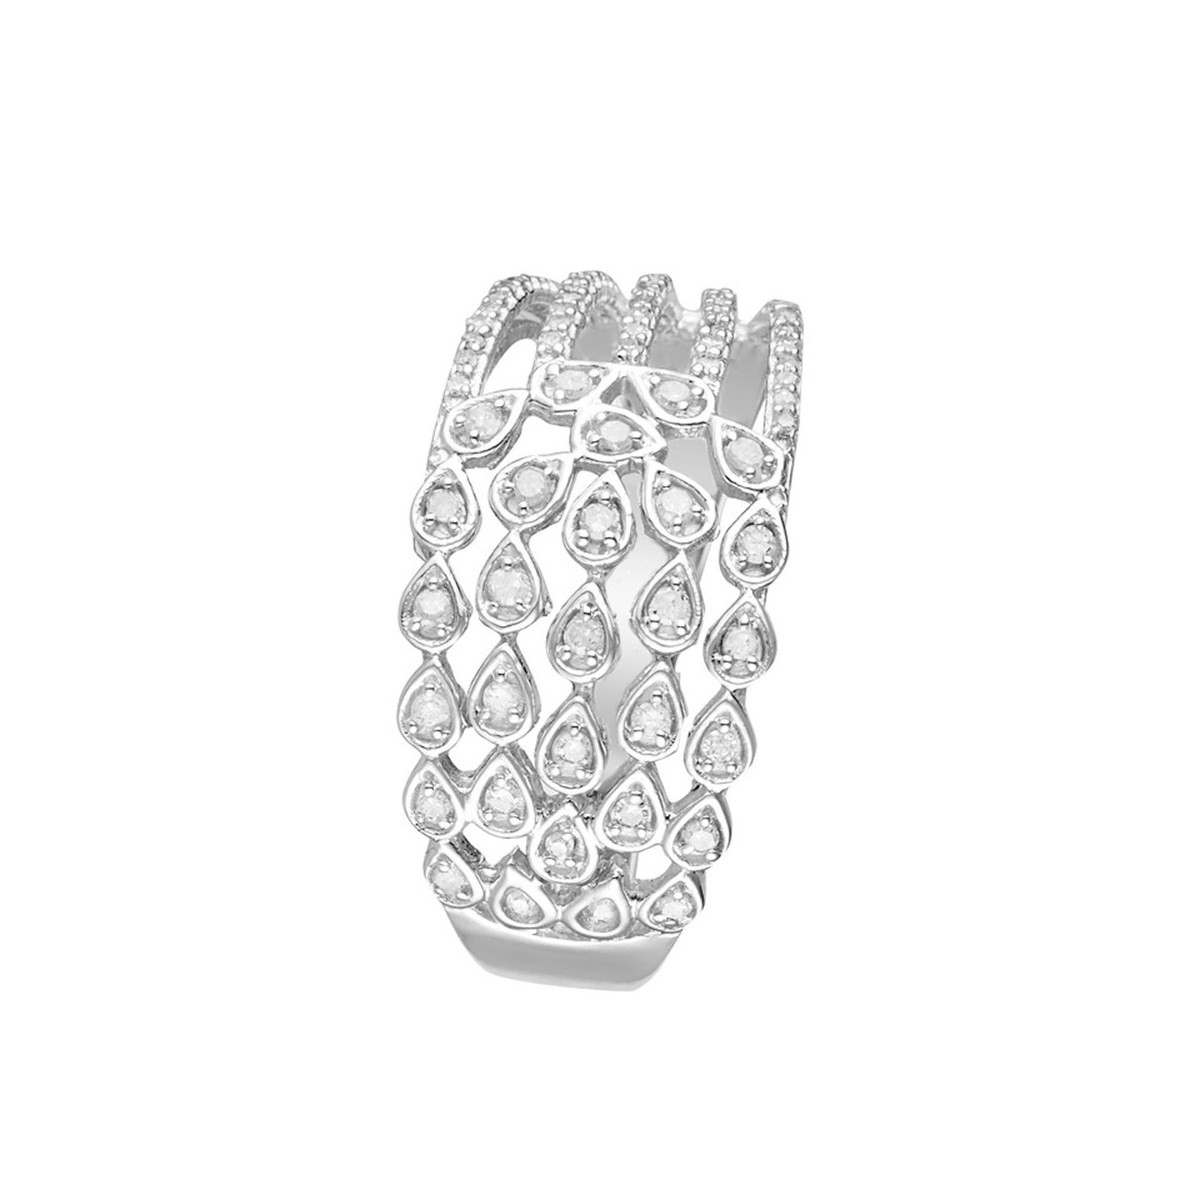 Bague Or Blanc et Diamants 0 -25 carats Babylone - vue V1